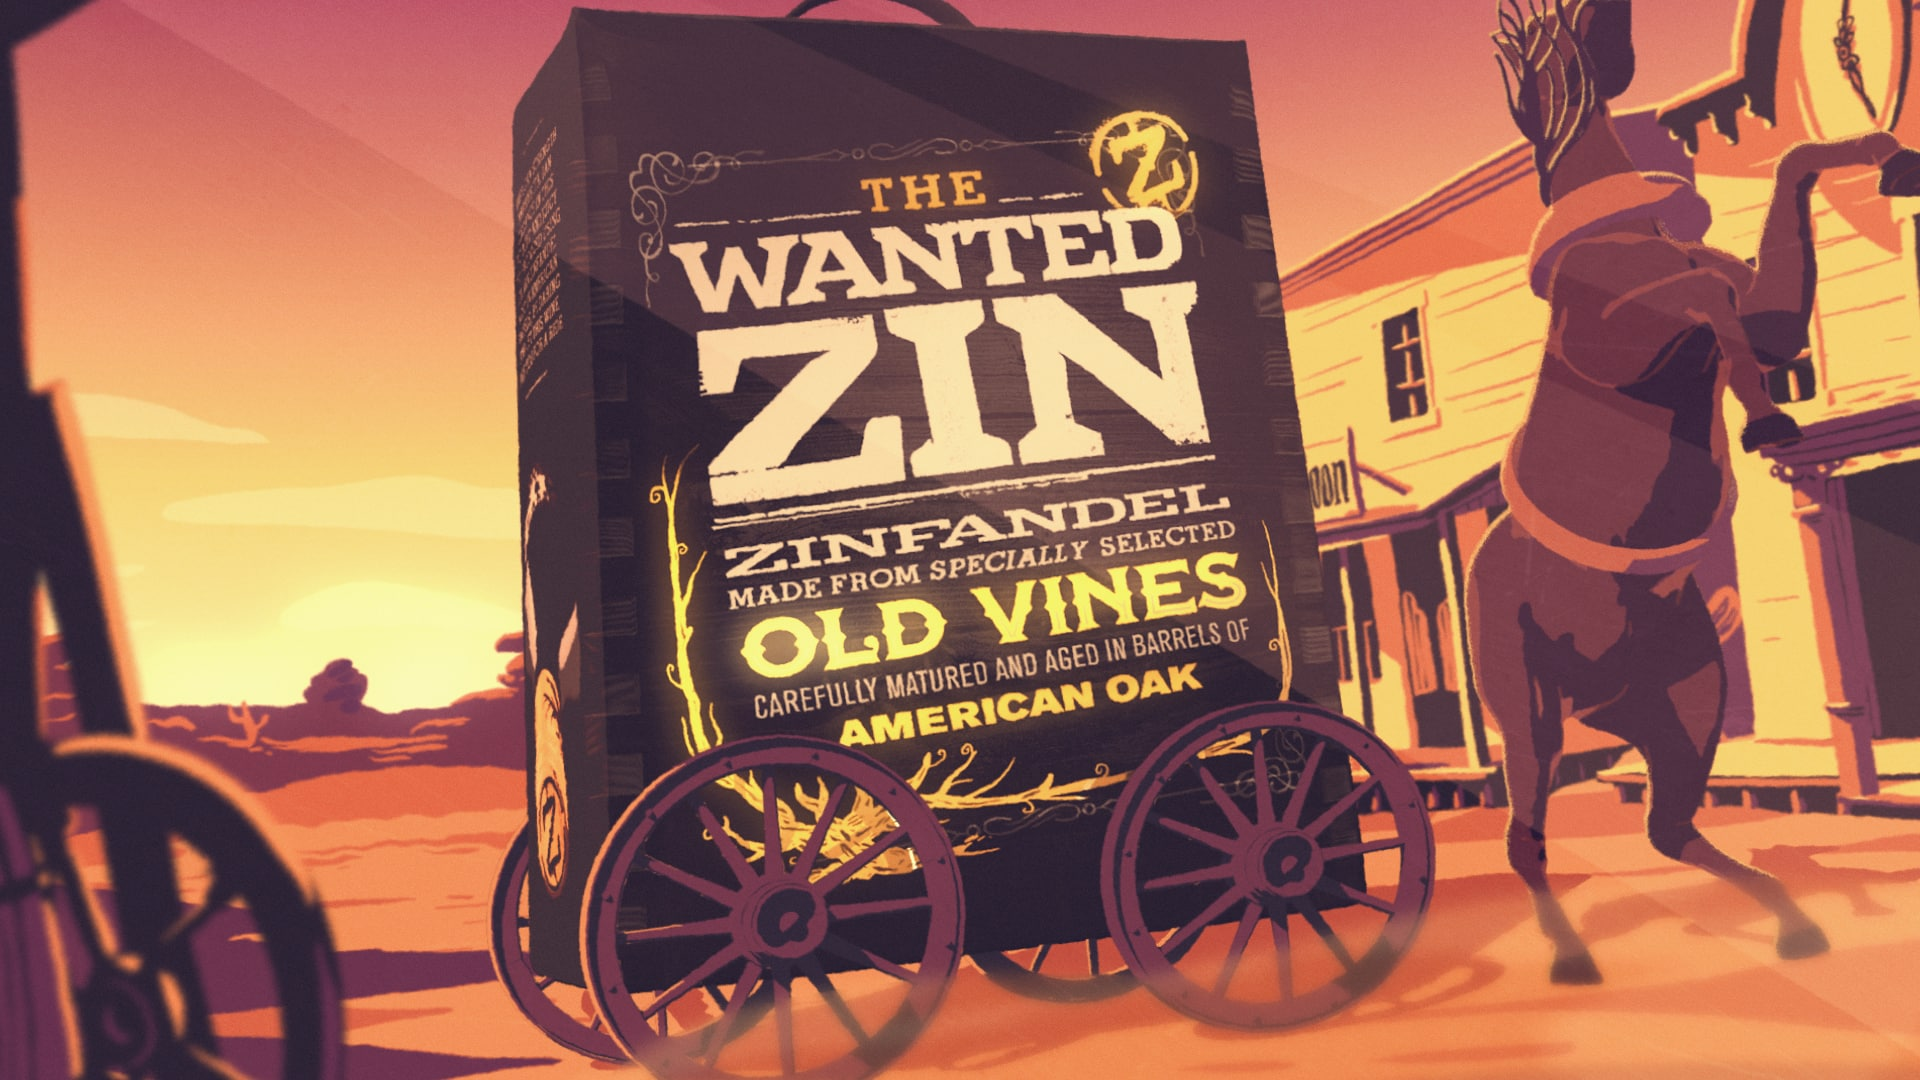 The wanted zin, picture, image